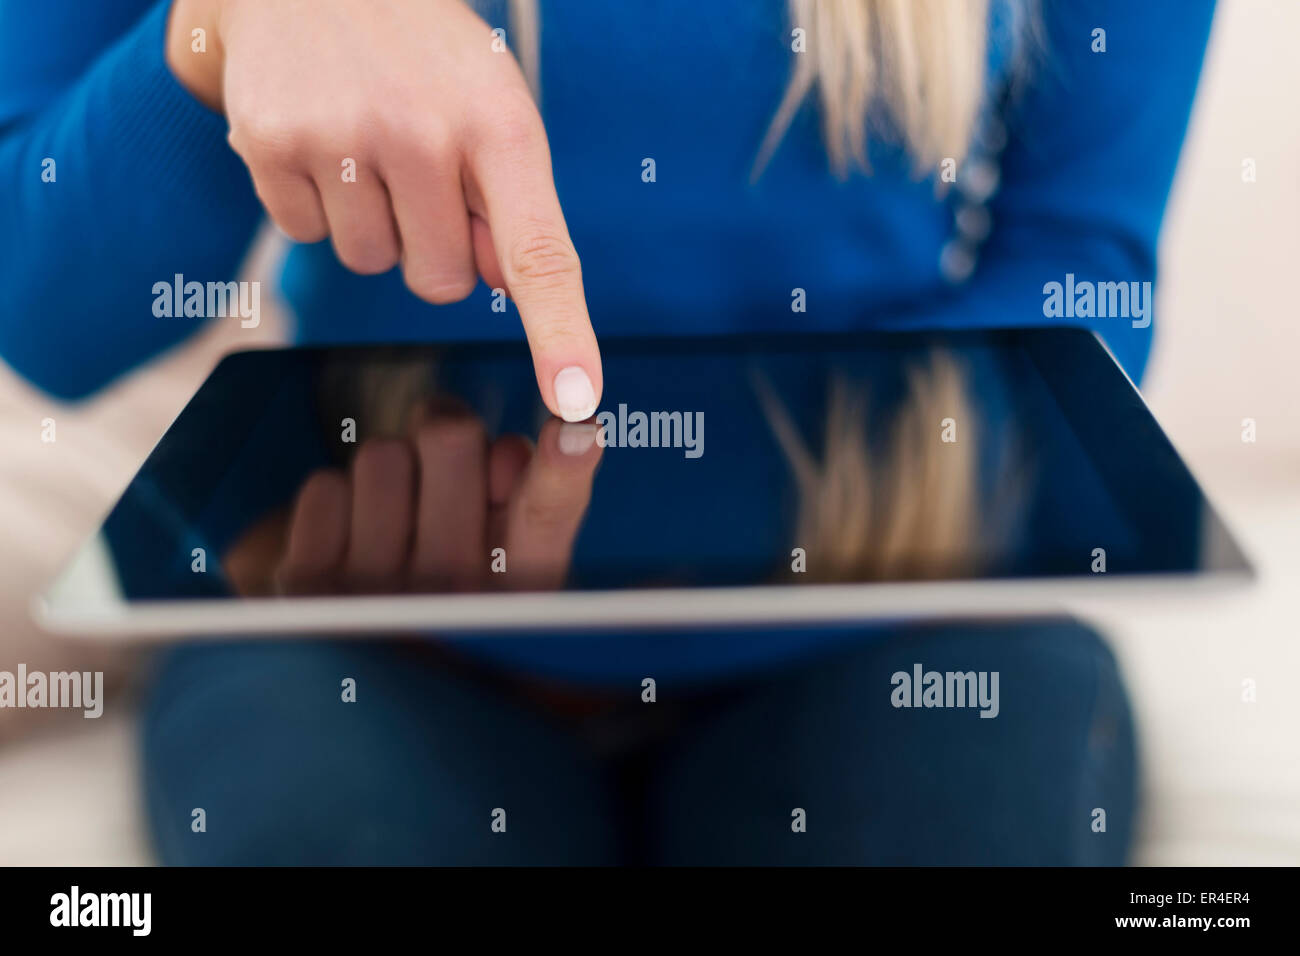 Close up of woman using digital tablet - Stock Image